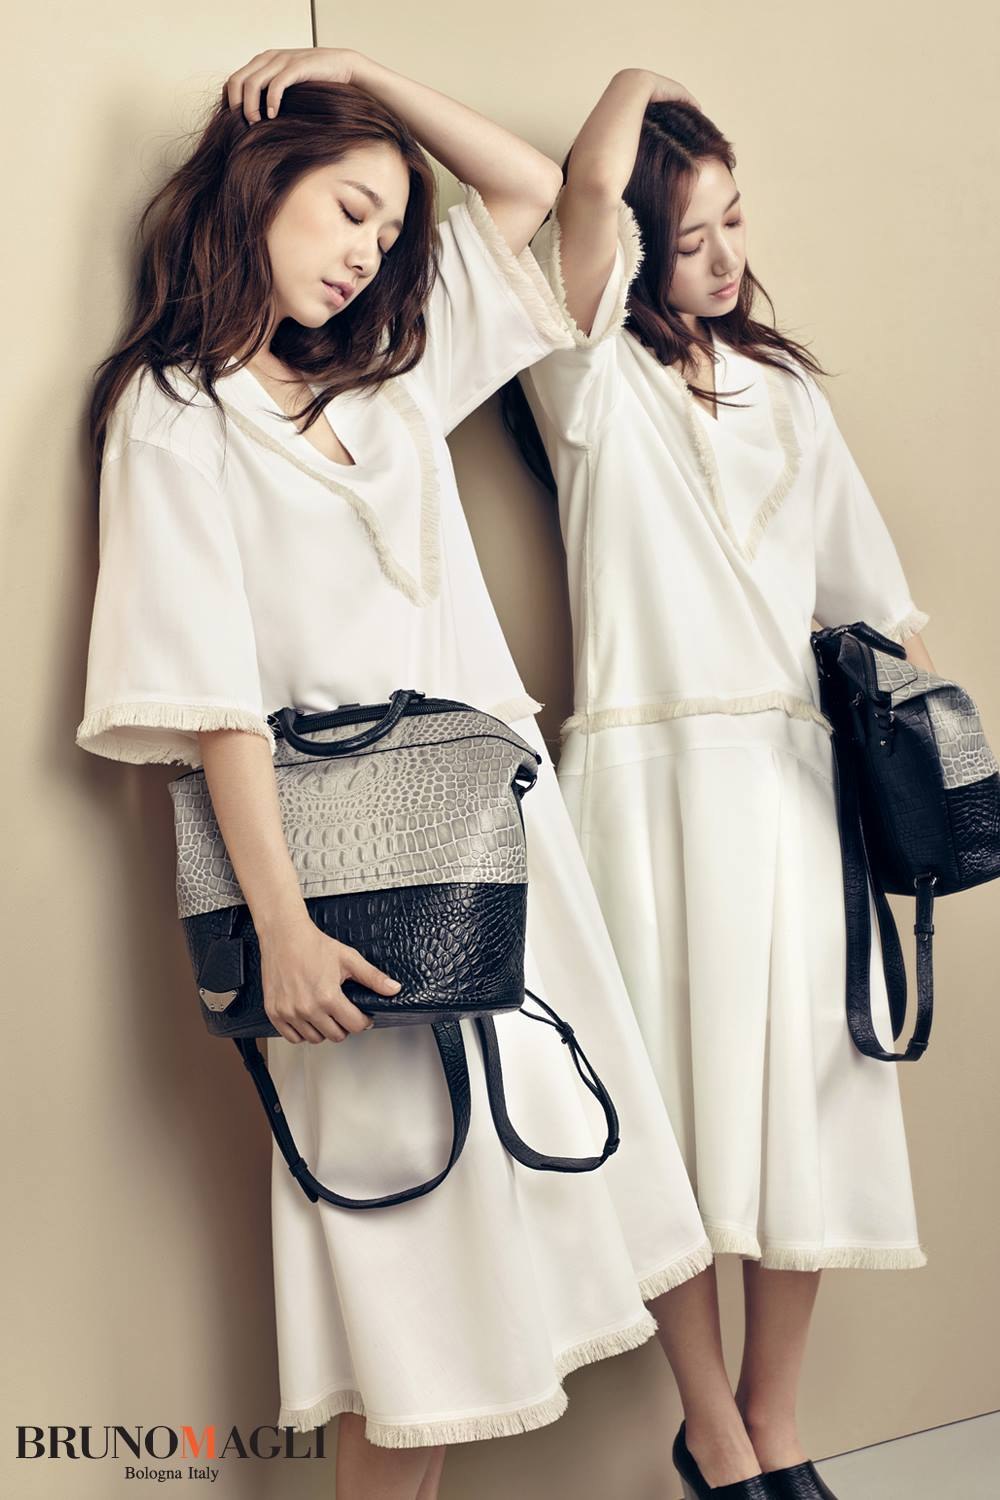 Park Shin Hye for Brunomagli